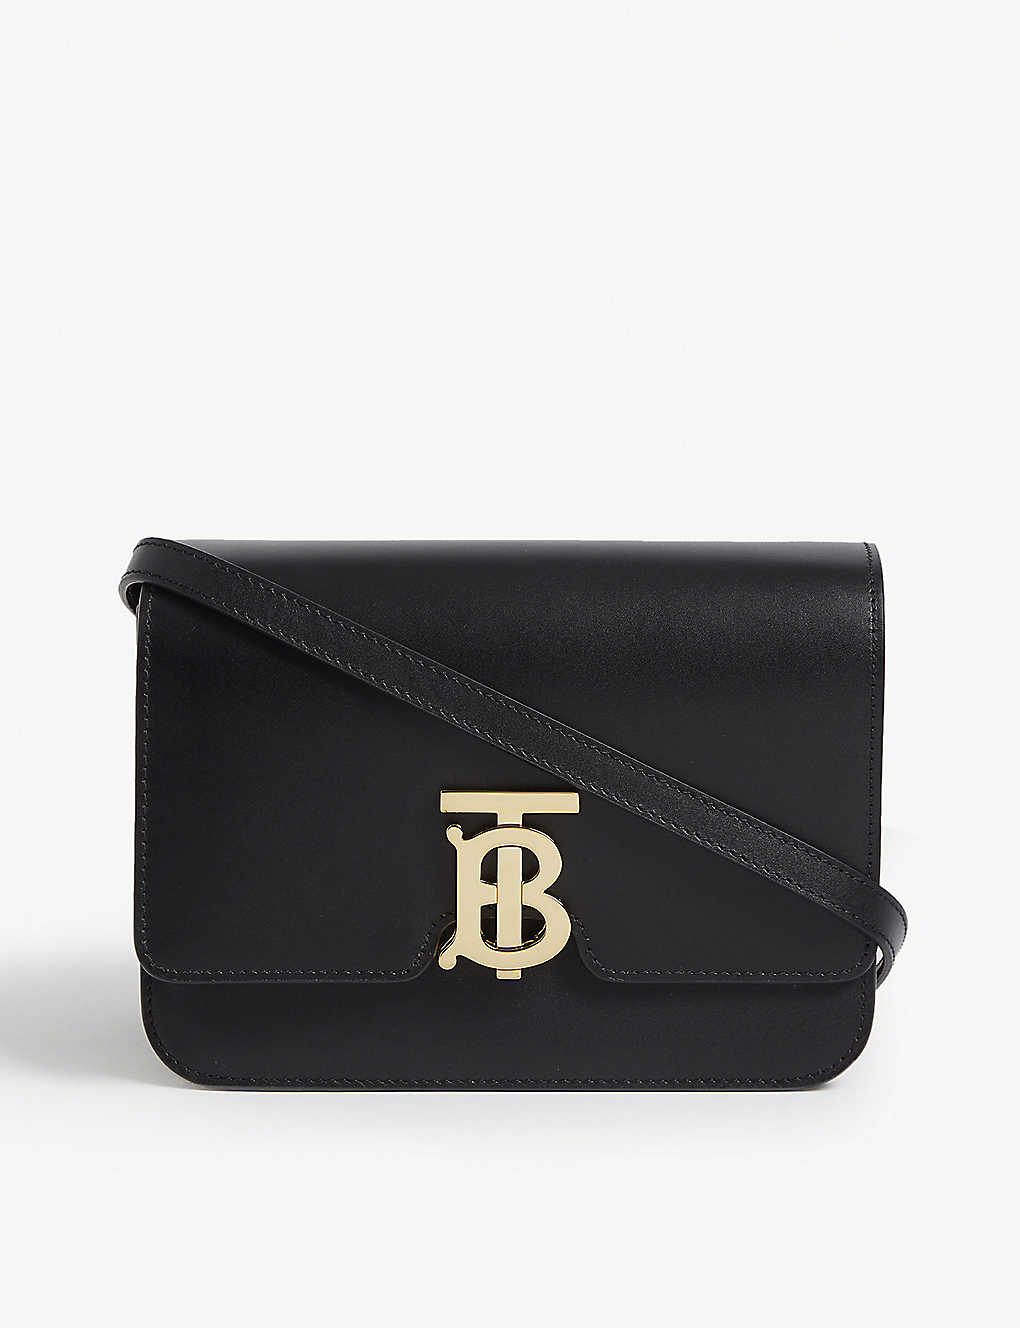 BURBERRY: Logo leather shoulder bag